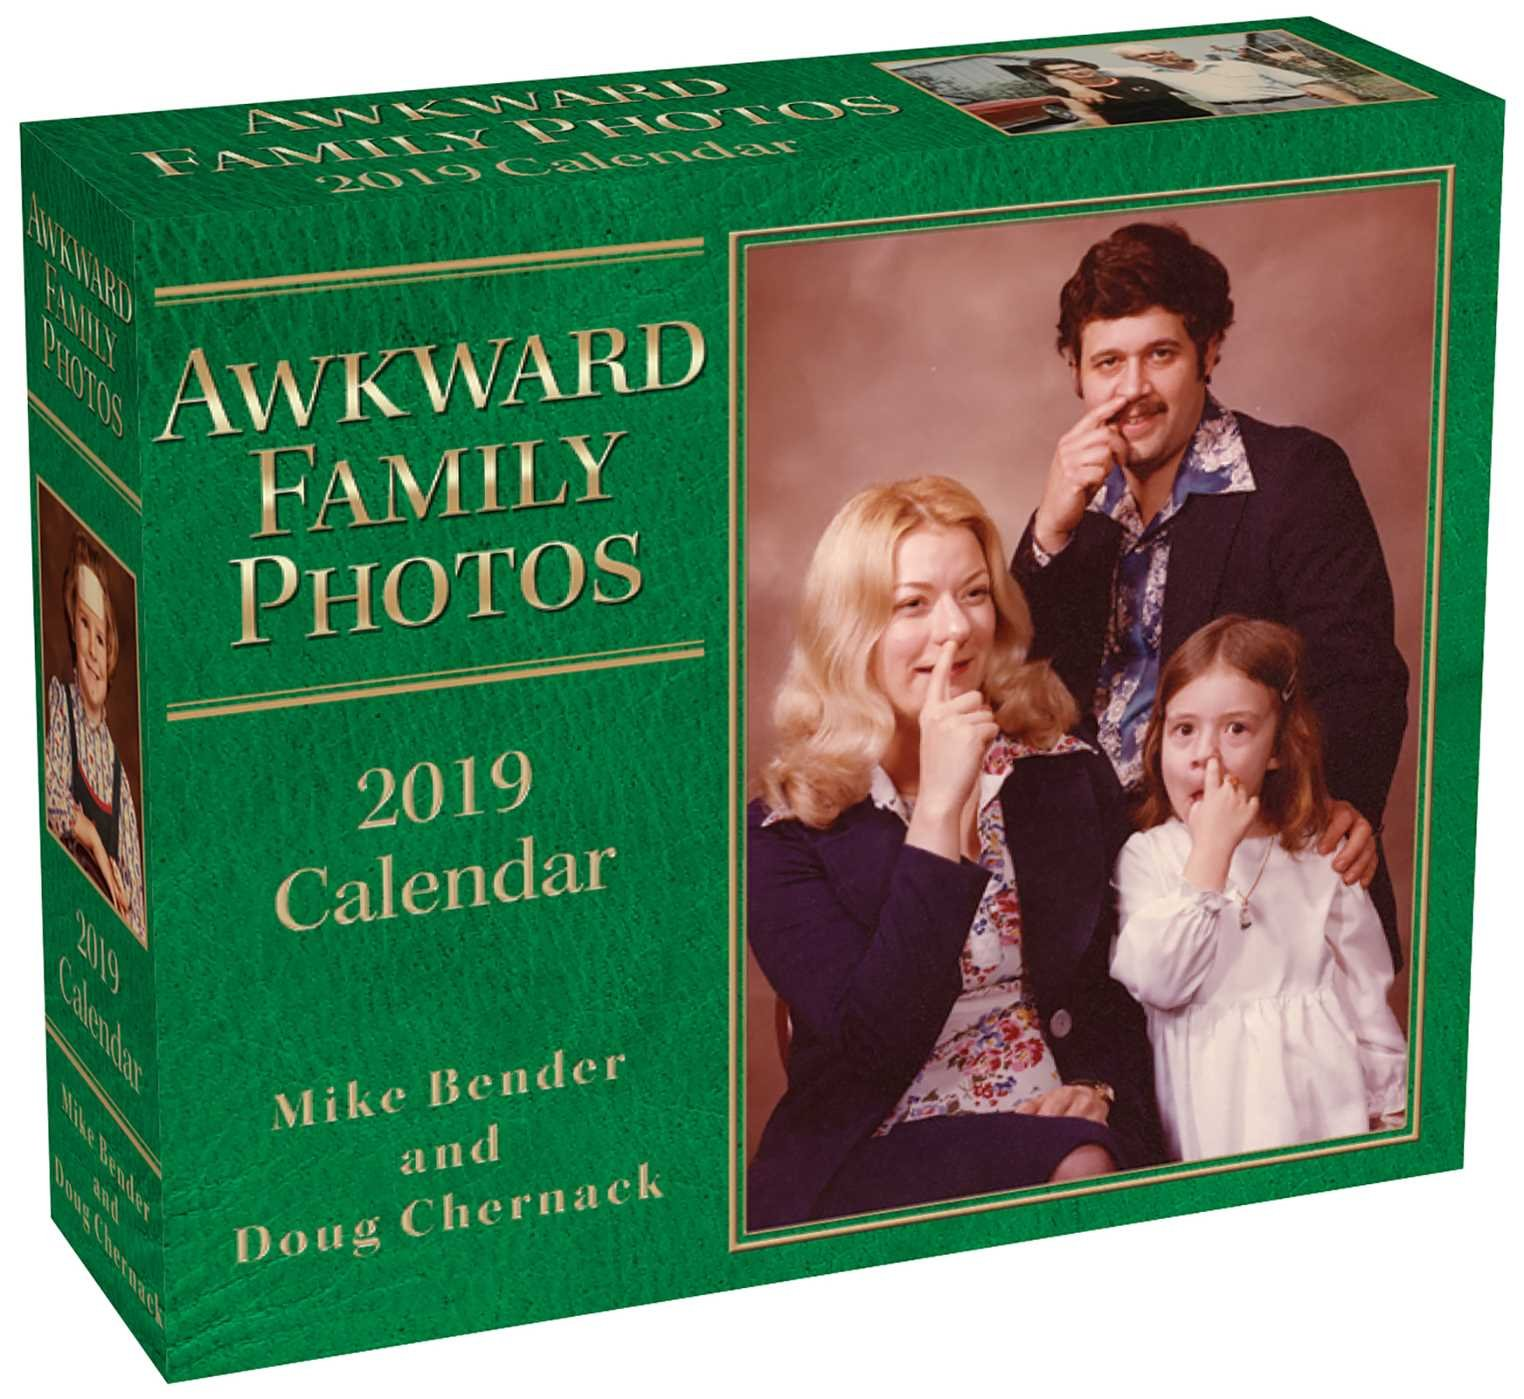 Awkward Family Photos 2019 Day-to-Day Calendar Calendar – Day to Day Calendar, Desk Calendar Mike Bender Doug Chernack Andrews McMeel Publishing 1449492088